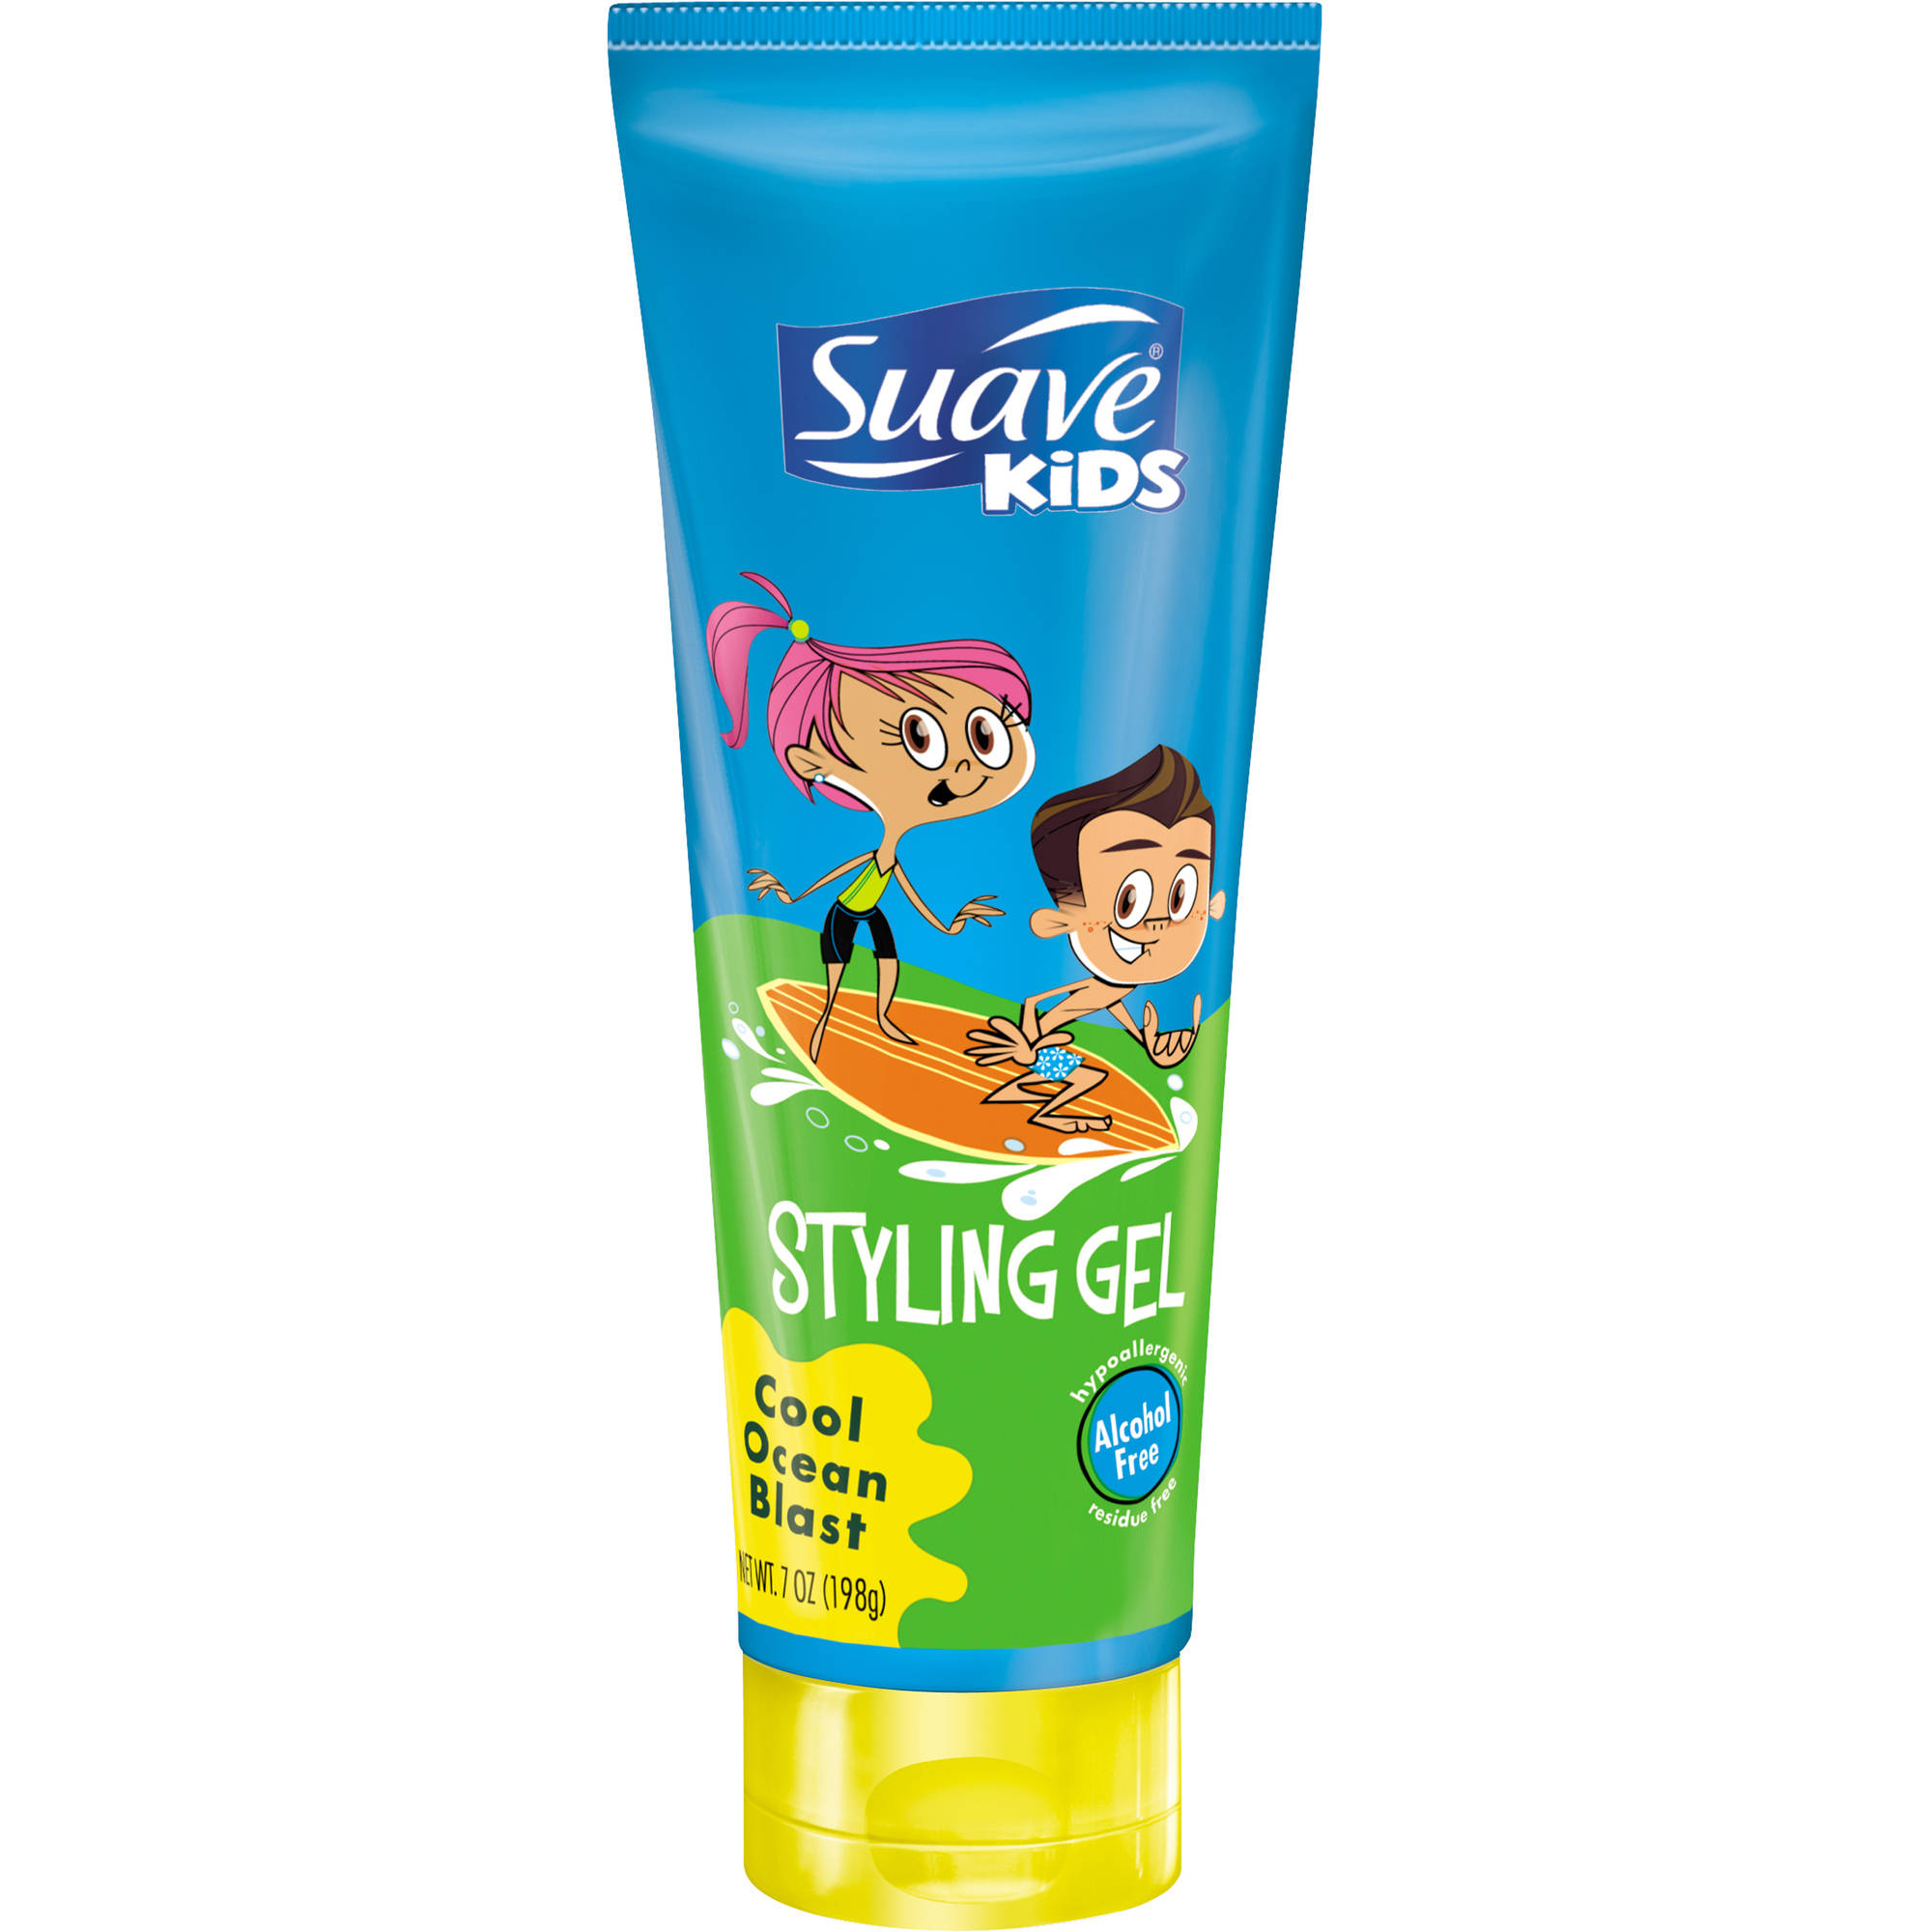 Suave Kids Cool Ocean Rush Gel, 7 oz